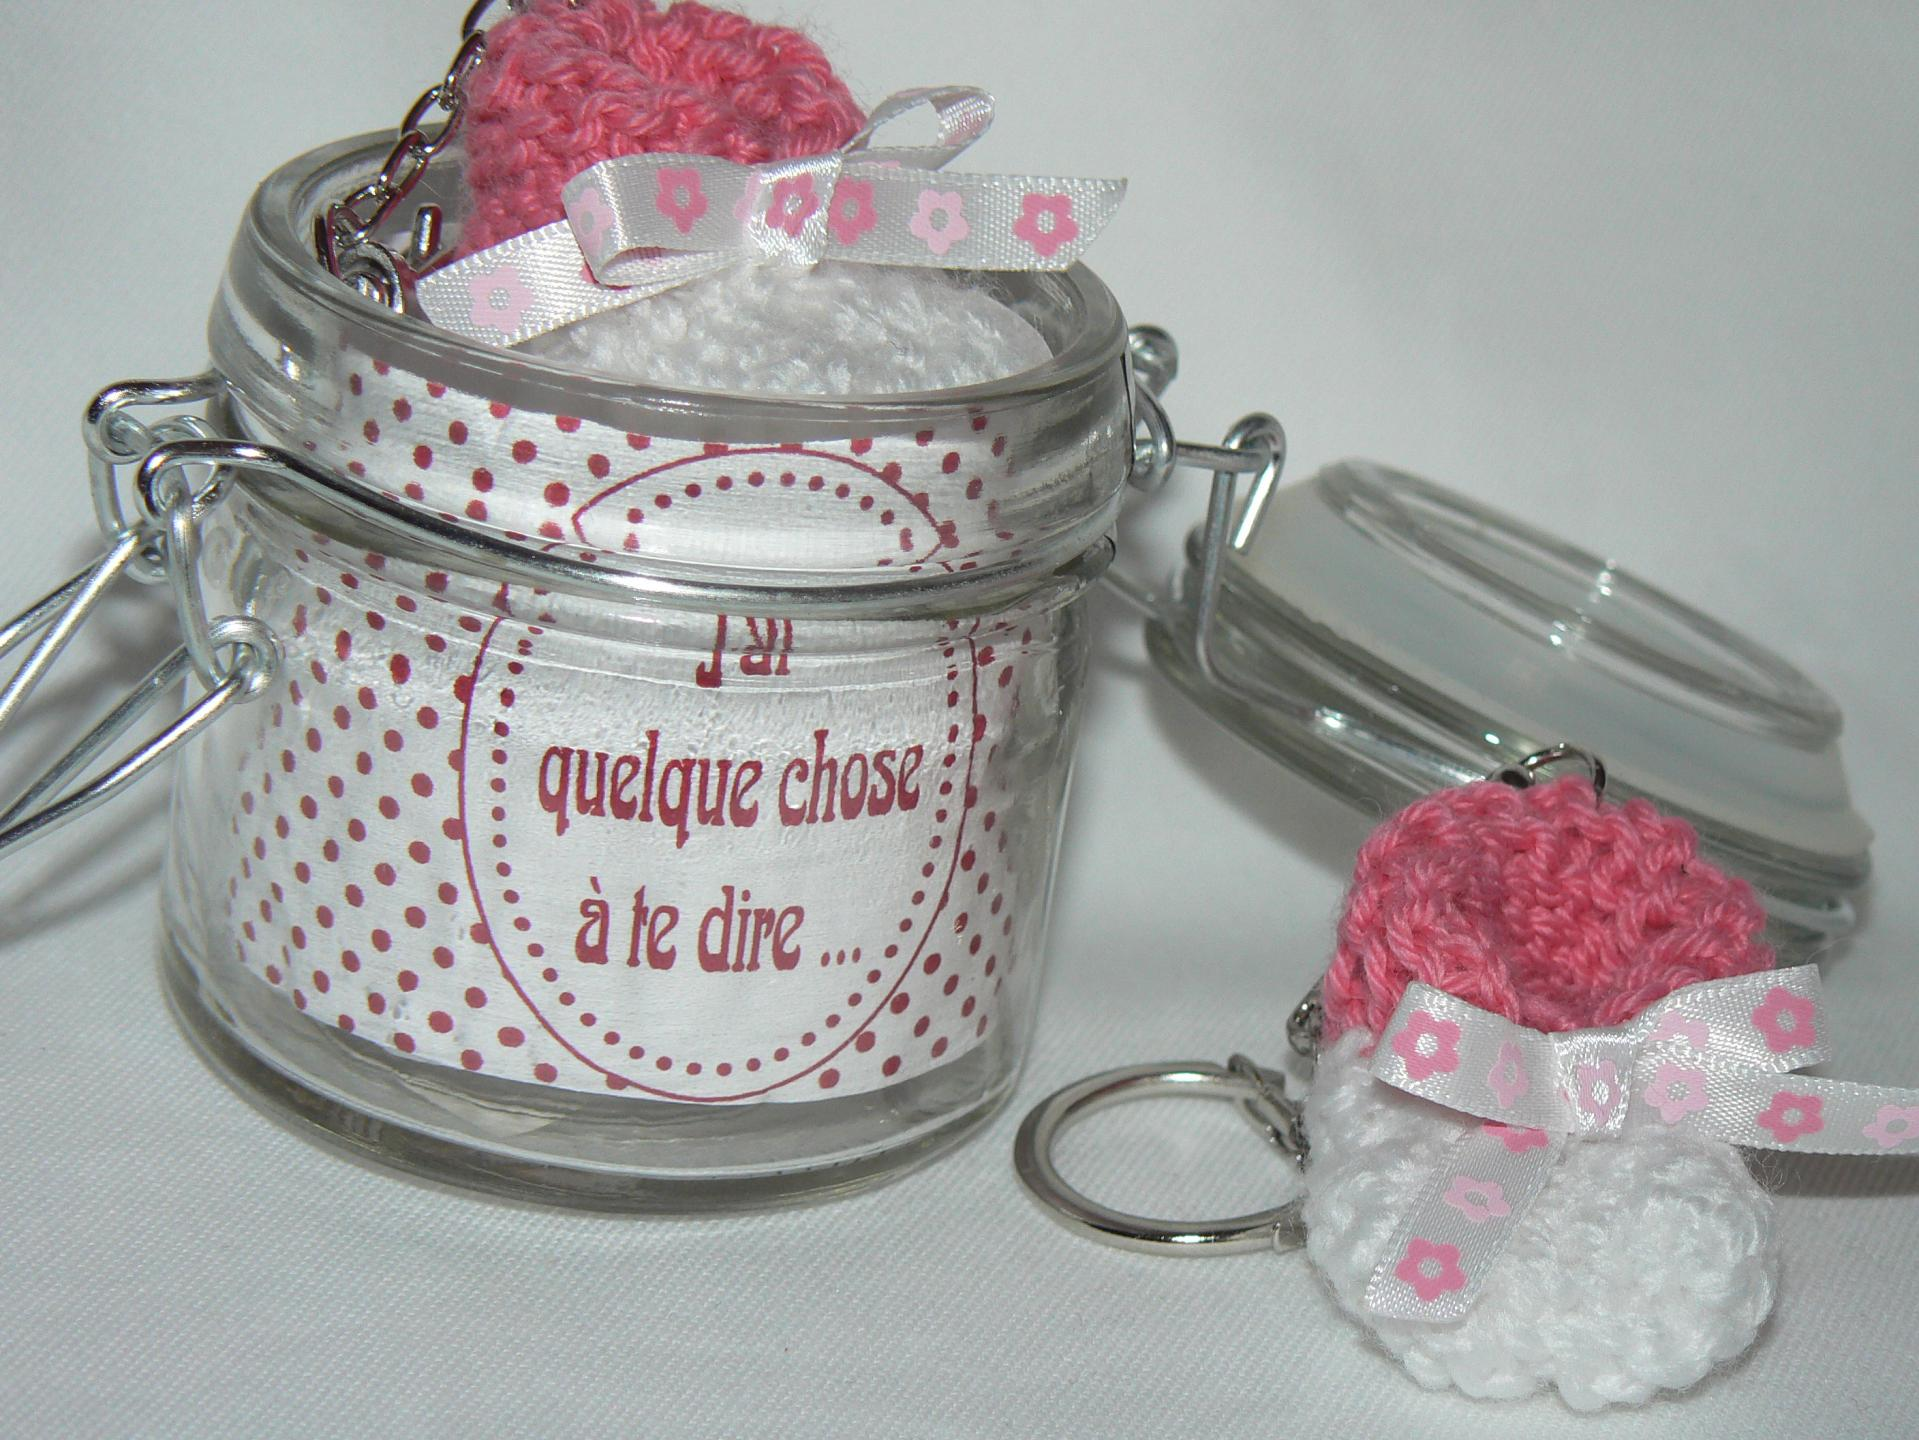 Porte clef chausson rose 2